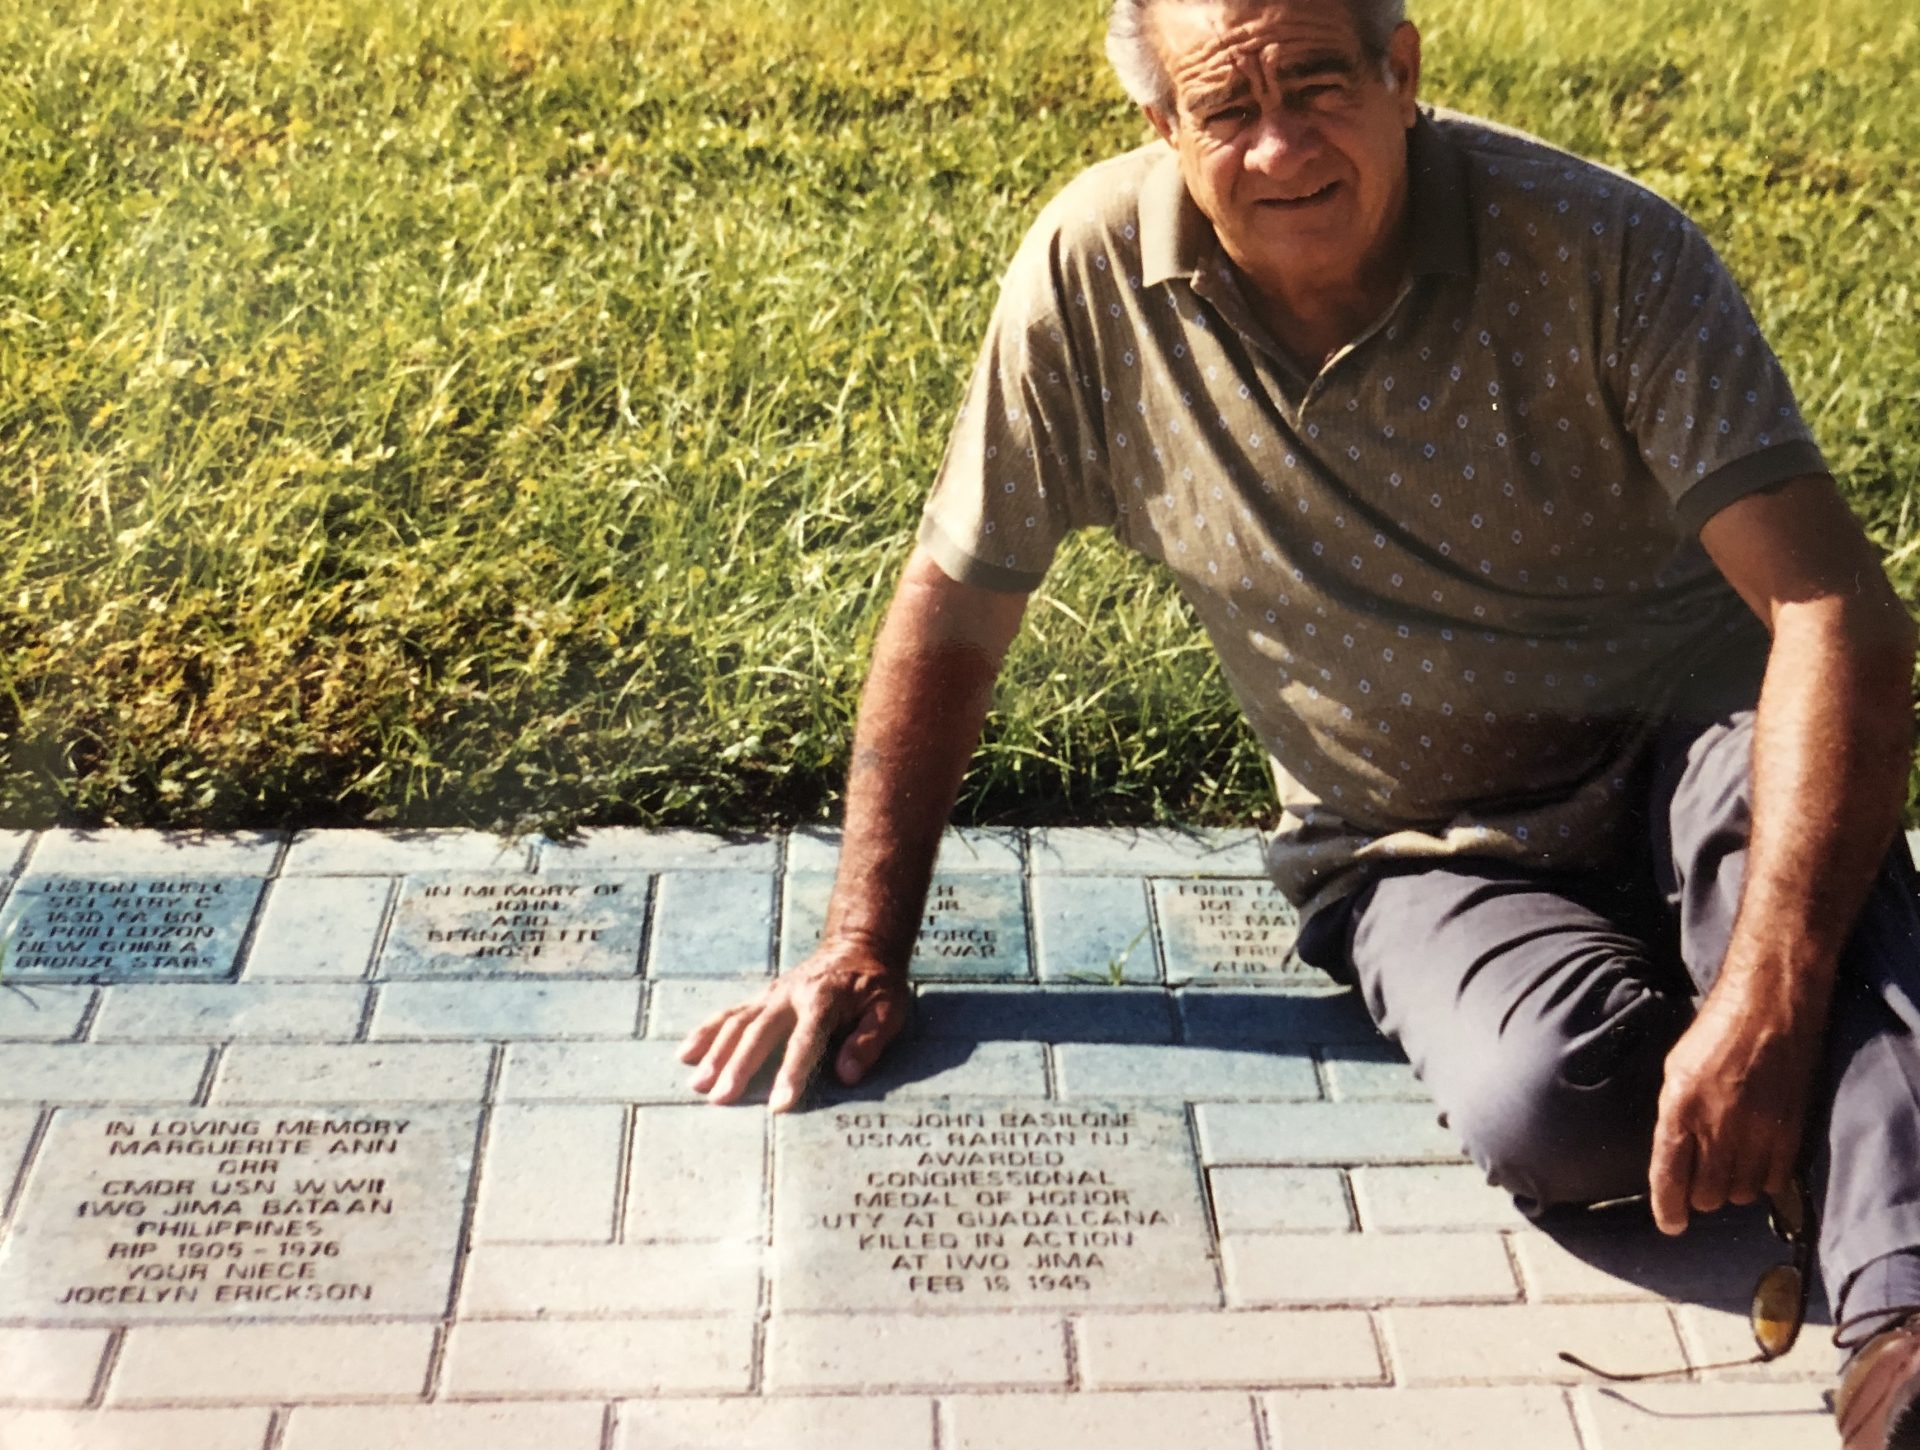 My dad by the John Basilone memorial brick in Cape Coral